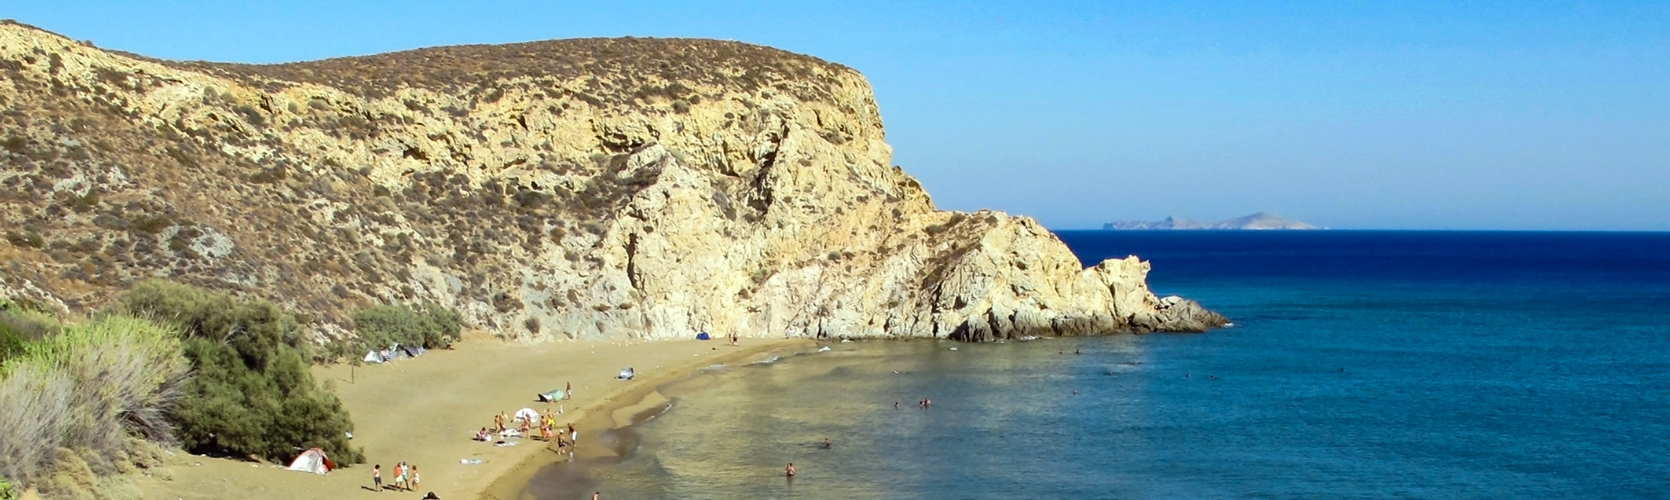 Anafi beach in the Cyclades